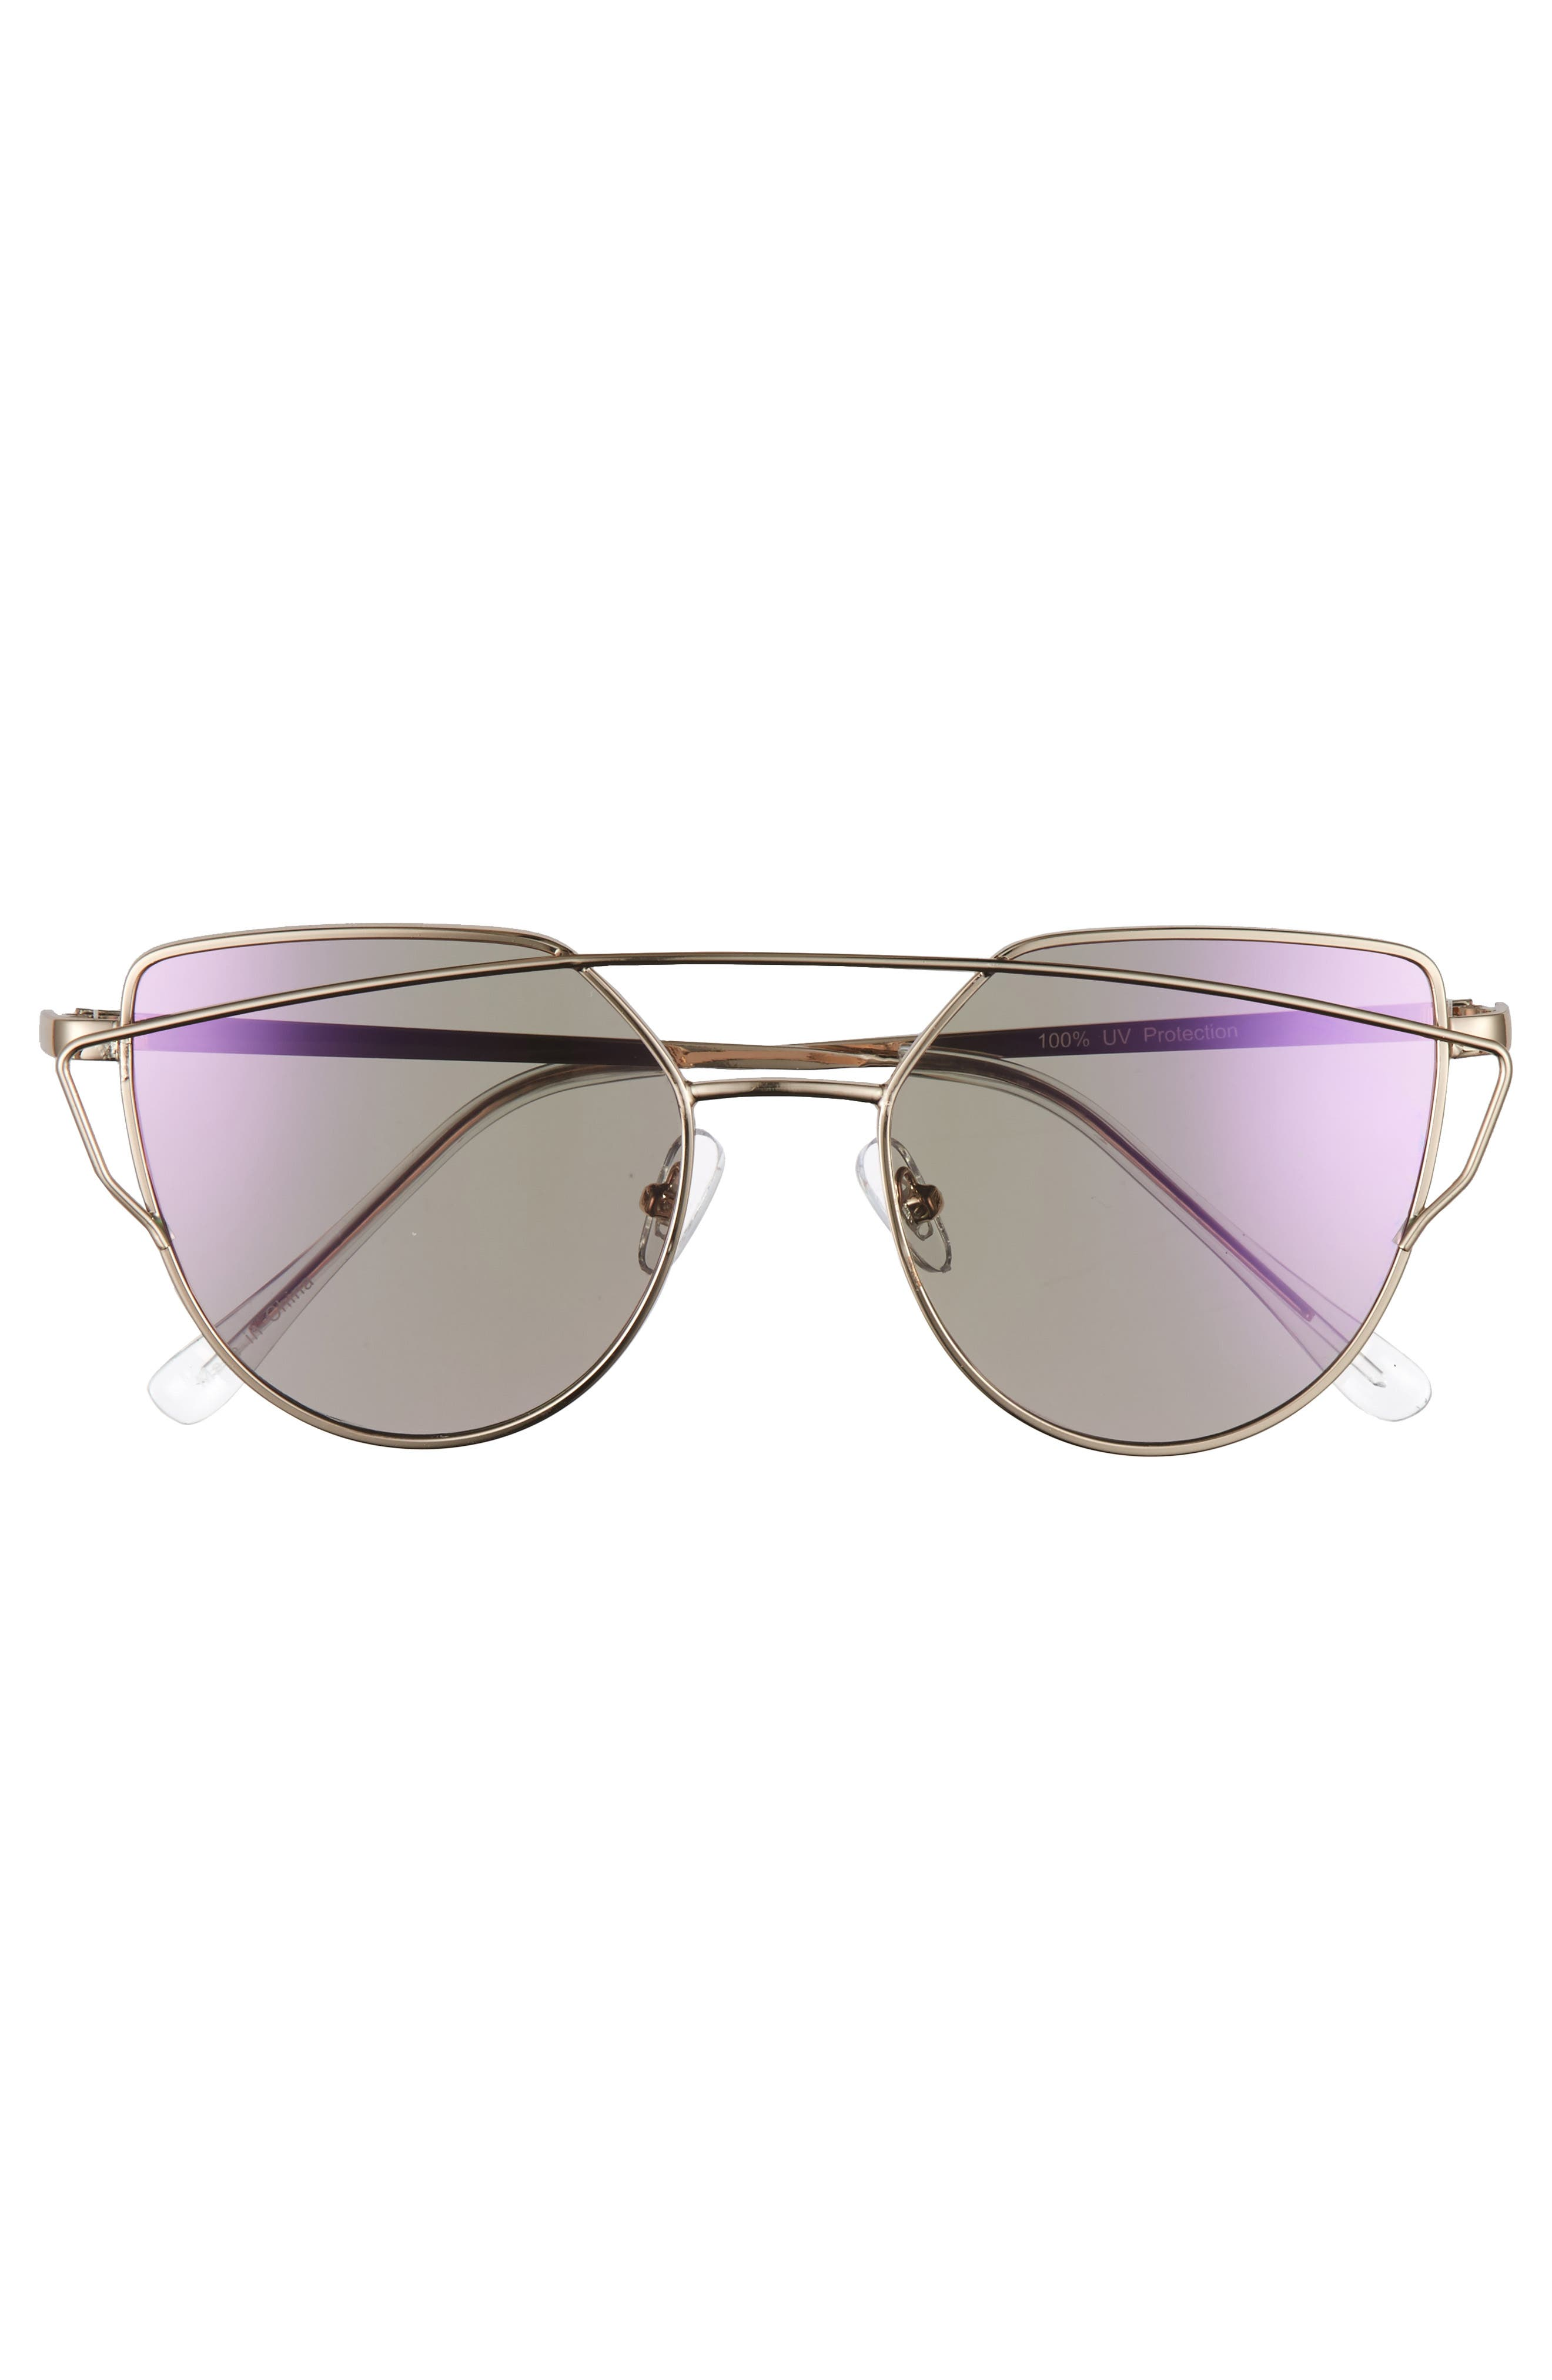 51mm Thin Brow Angular Aviator Sunglasses,                             Alternate thumbnail 22, color,